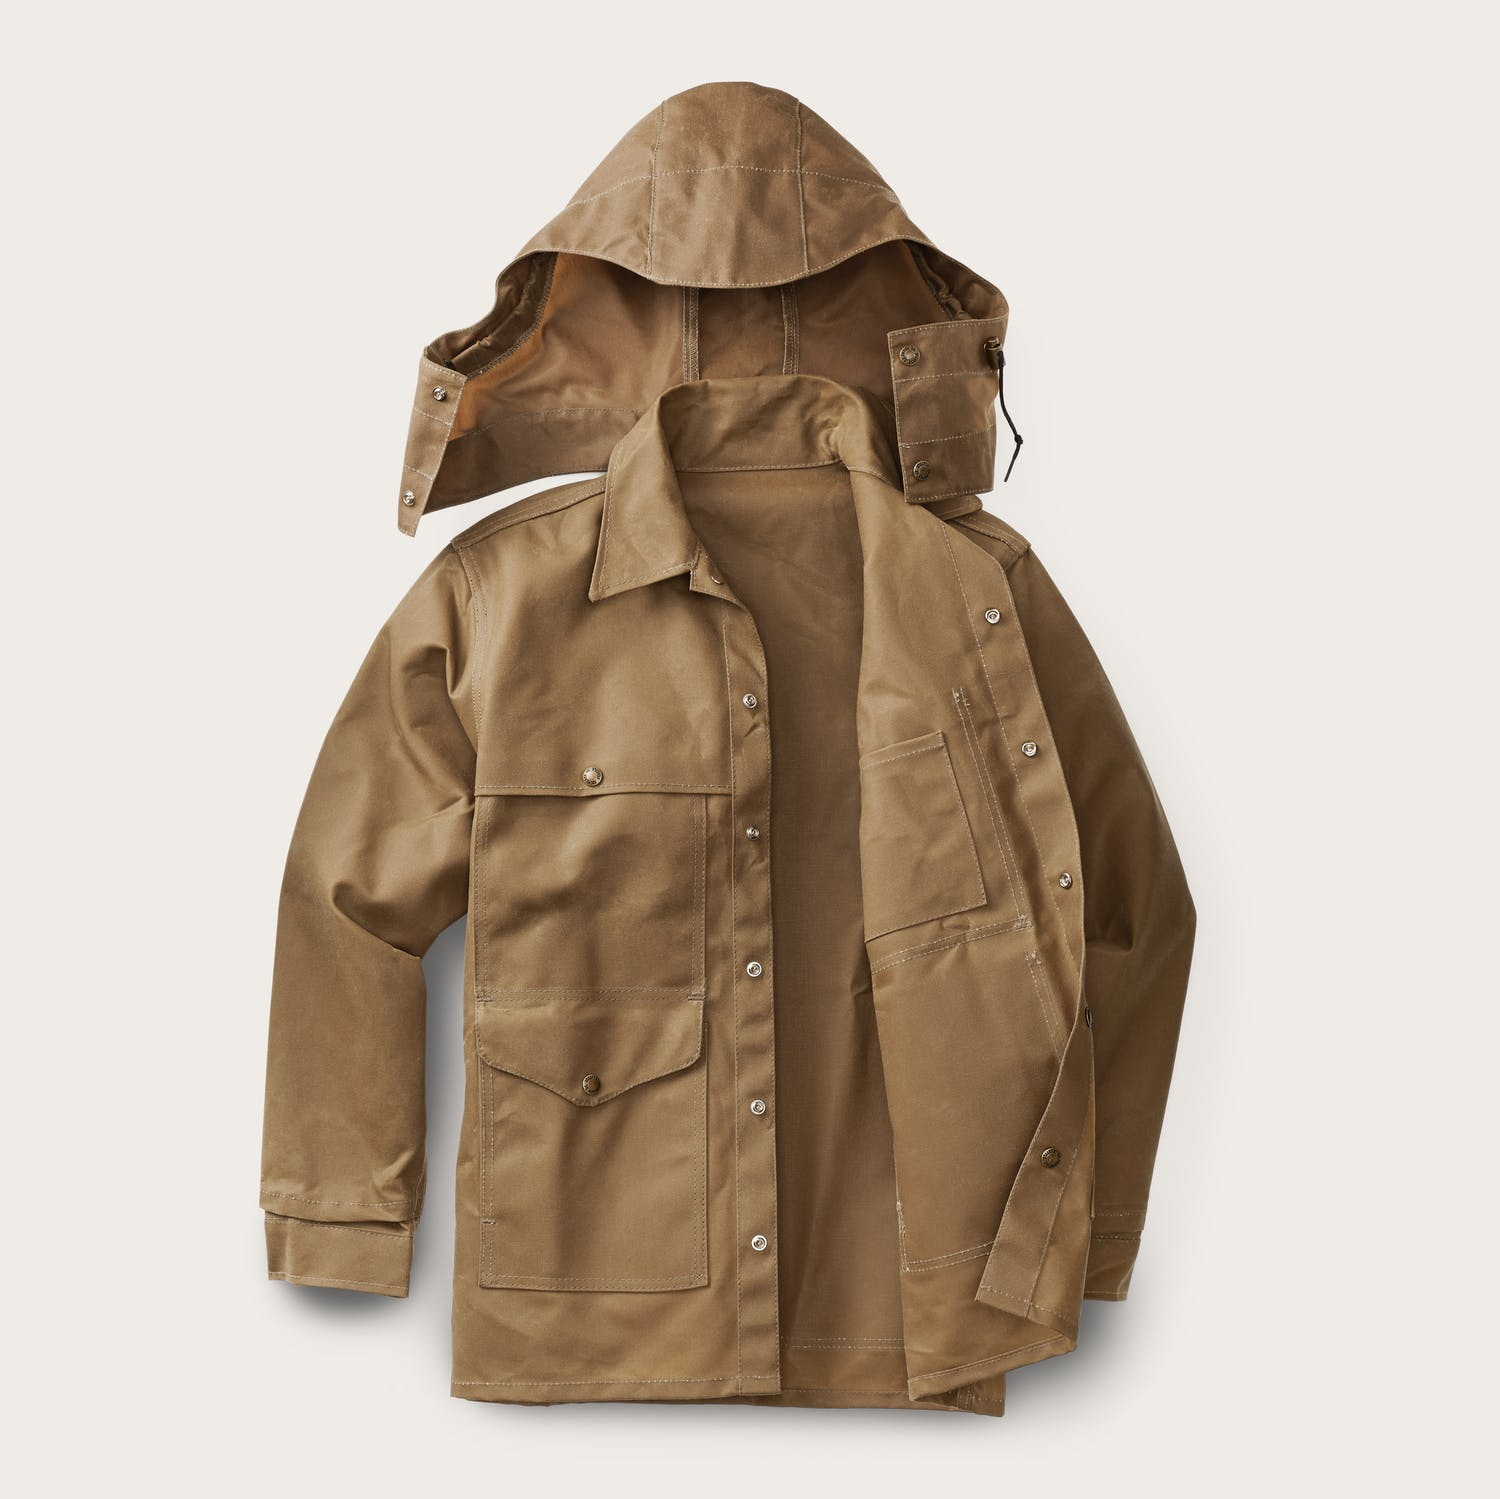 Filson - Tin Cloth Cruiser Jacket - Dark Tan - The Populess Company